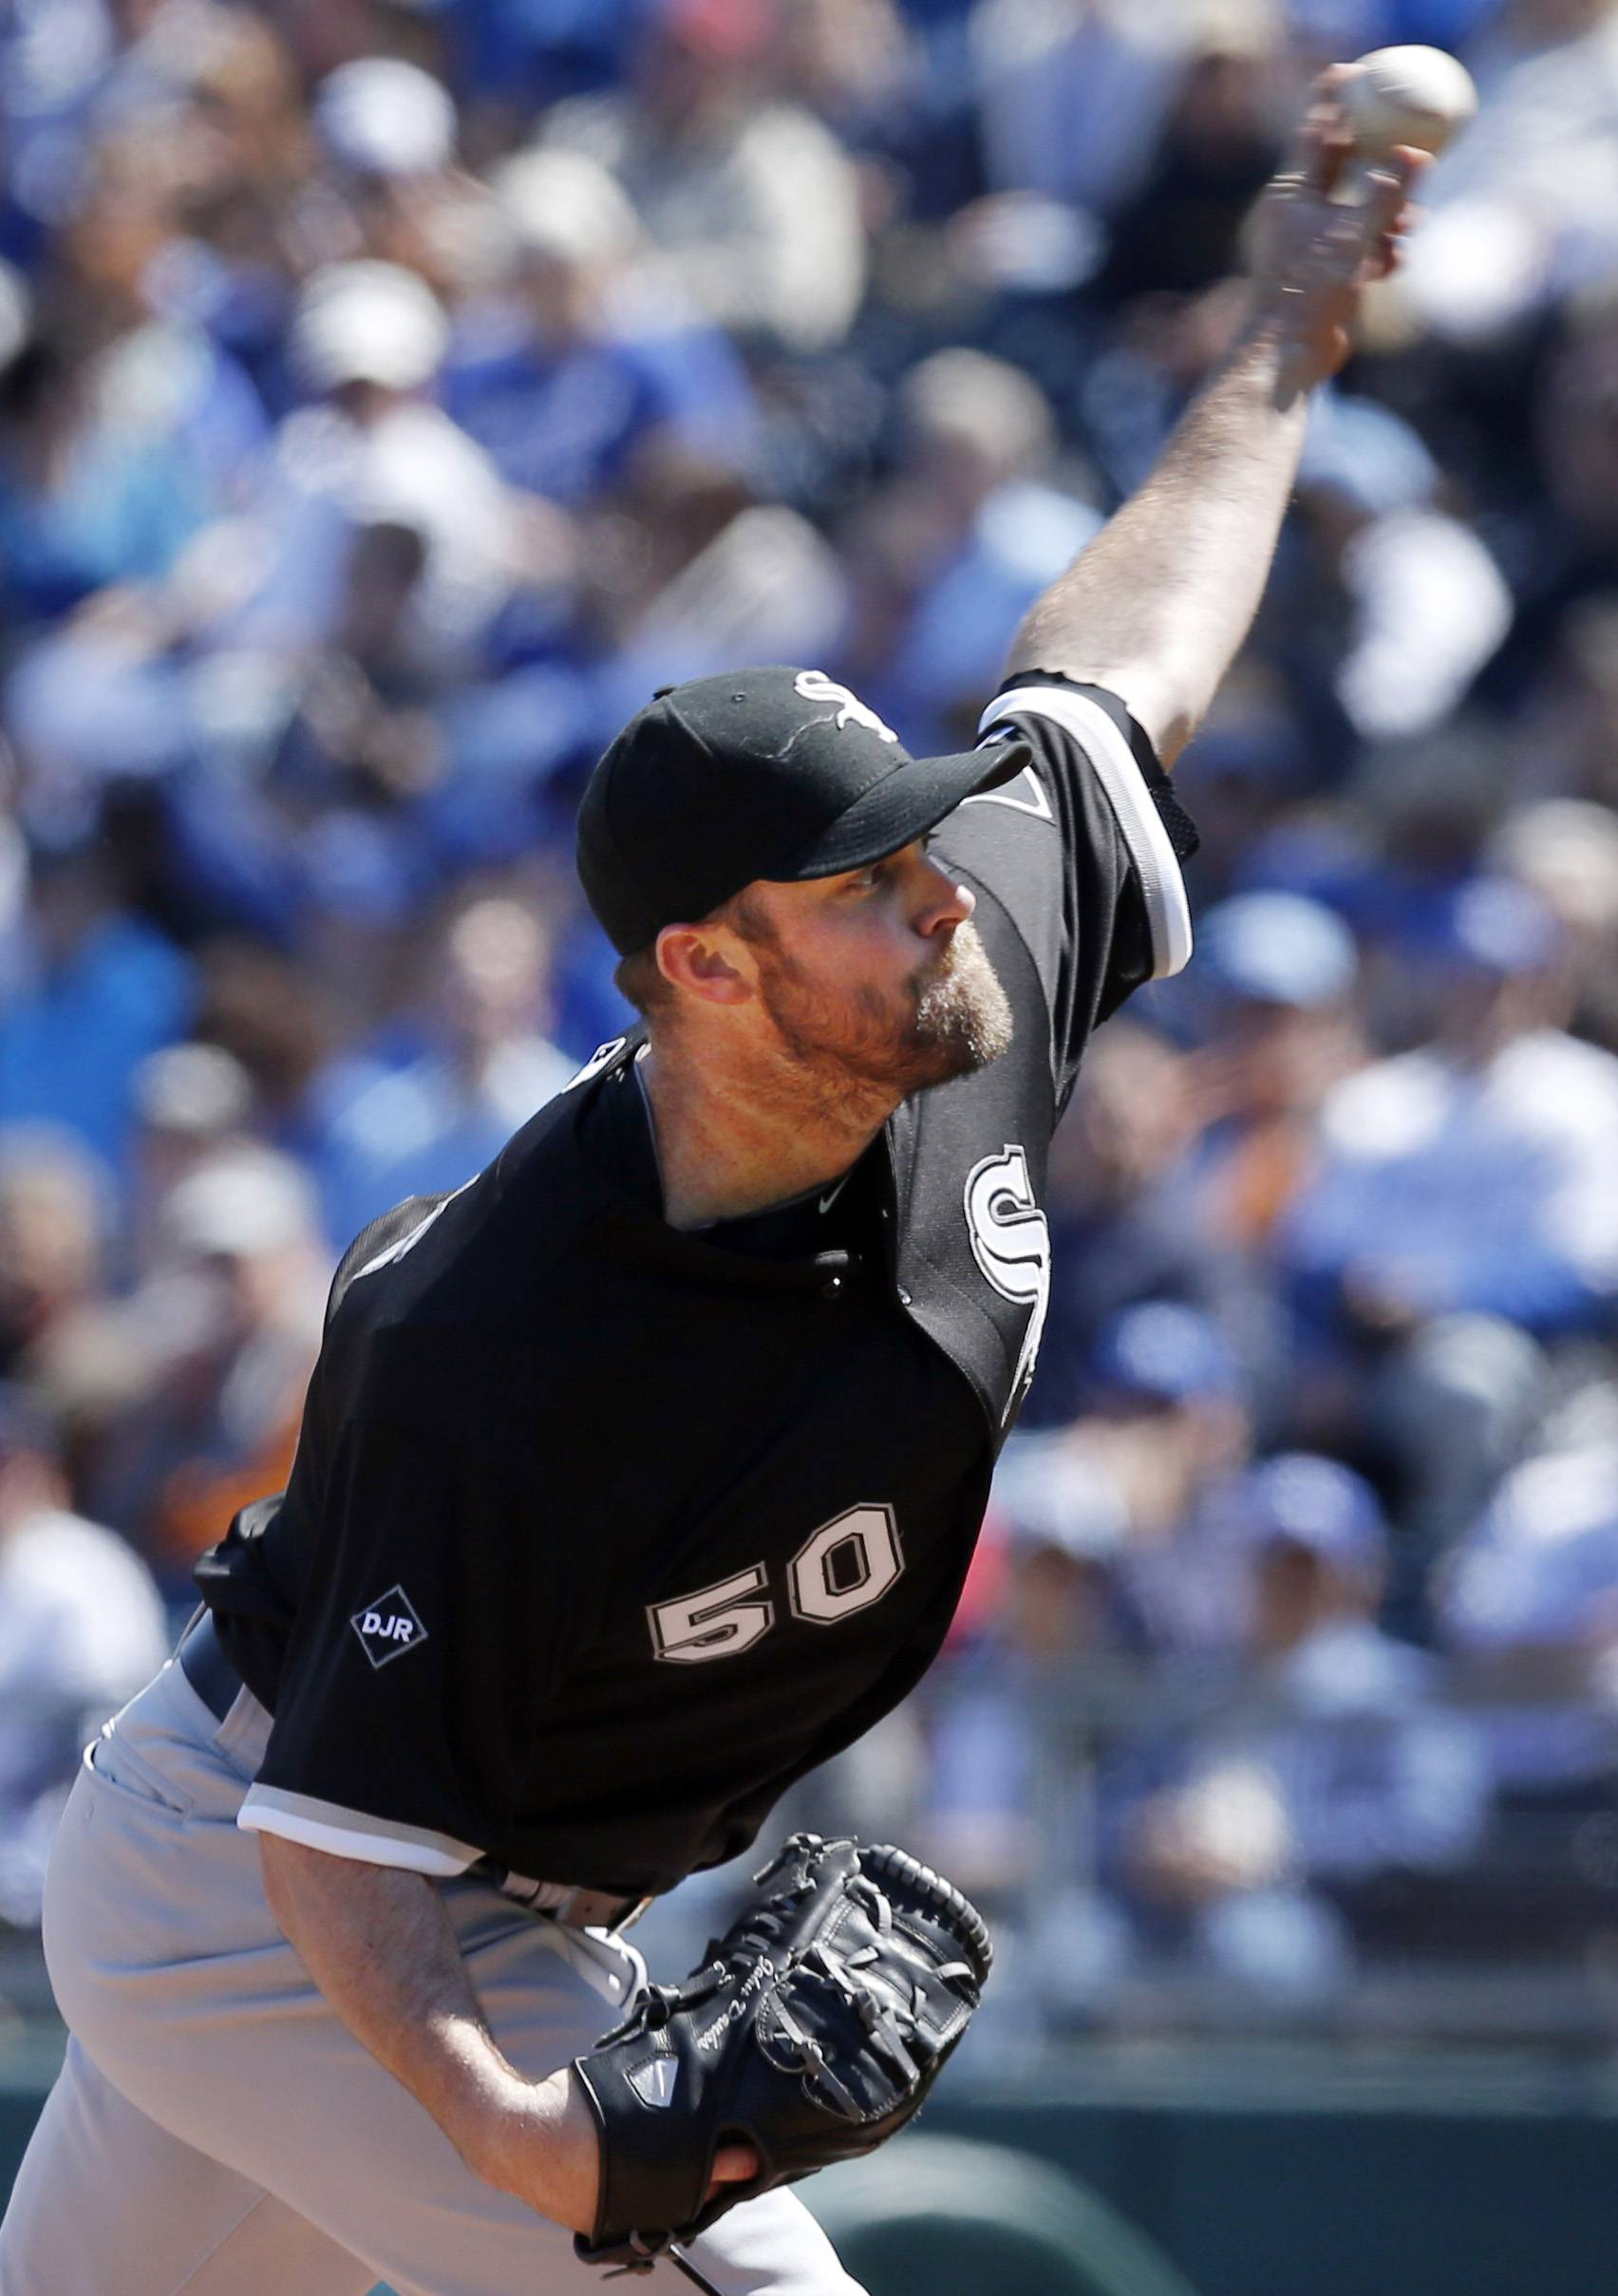 Chicago White Sox starting pitcher John Danks delivers to Kansas City Royals' Norichika Aoki during the first inning of a baseball game at Kauffman Stadium in Kansas City, Mo., Saturday, April 5, 2014.